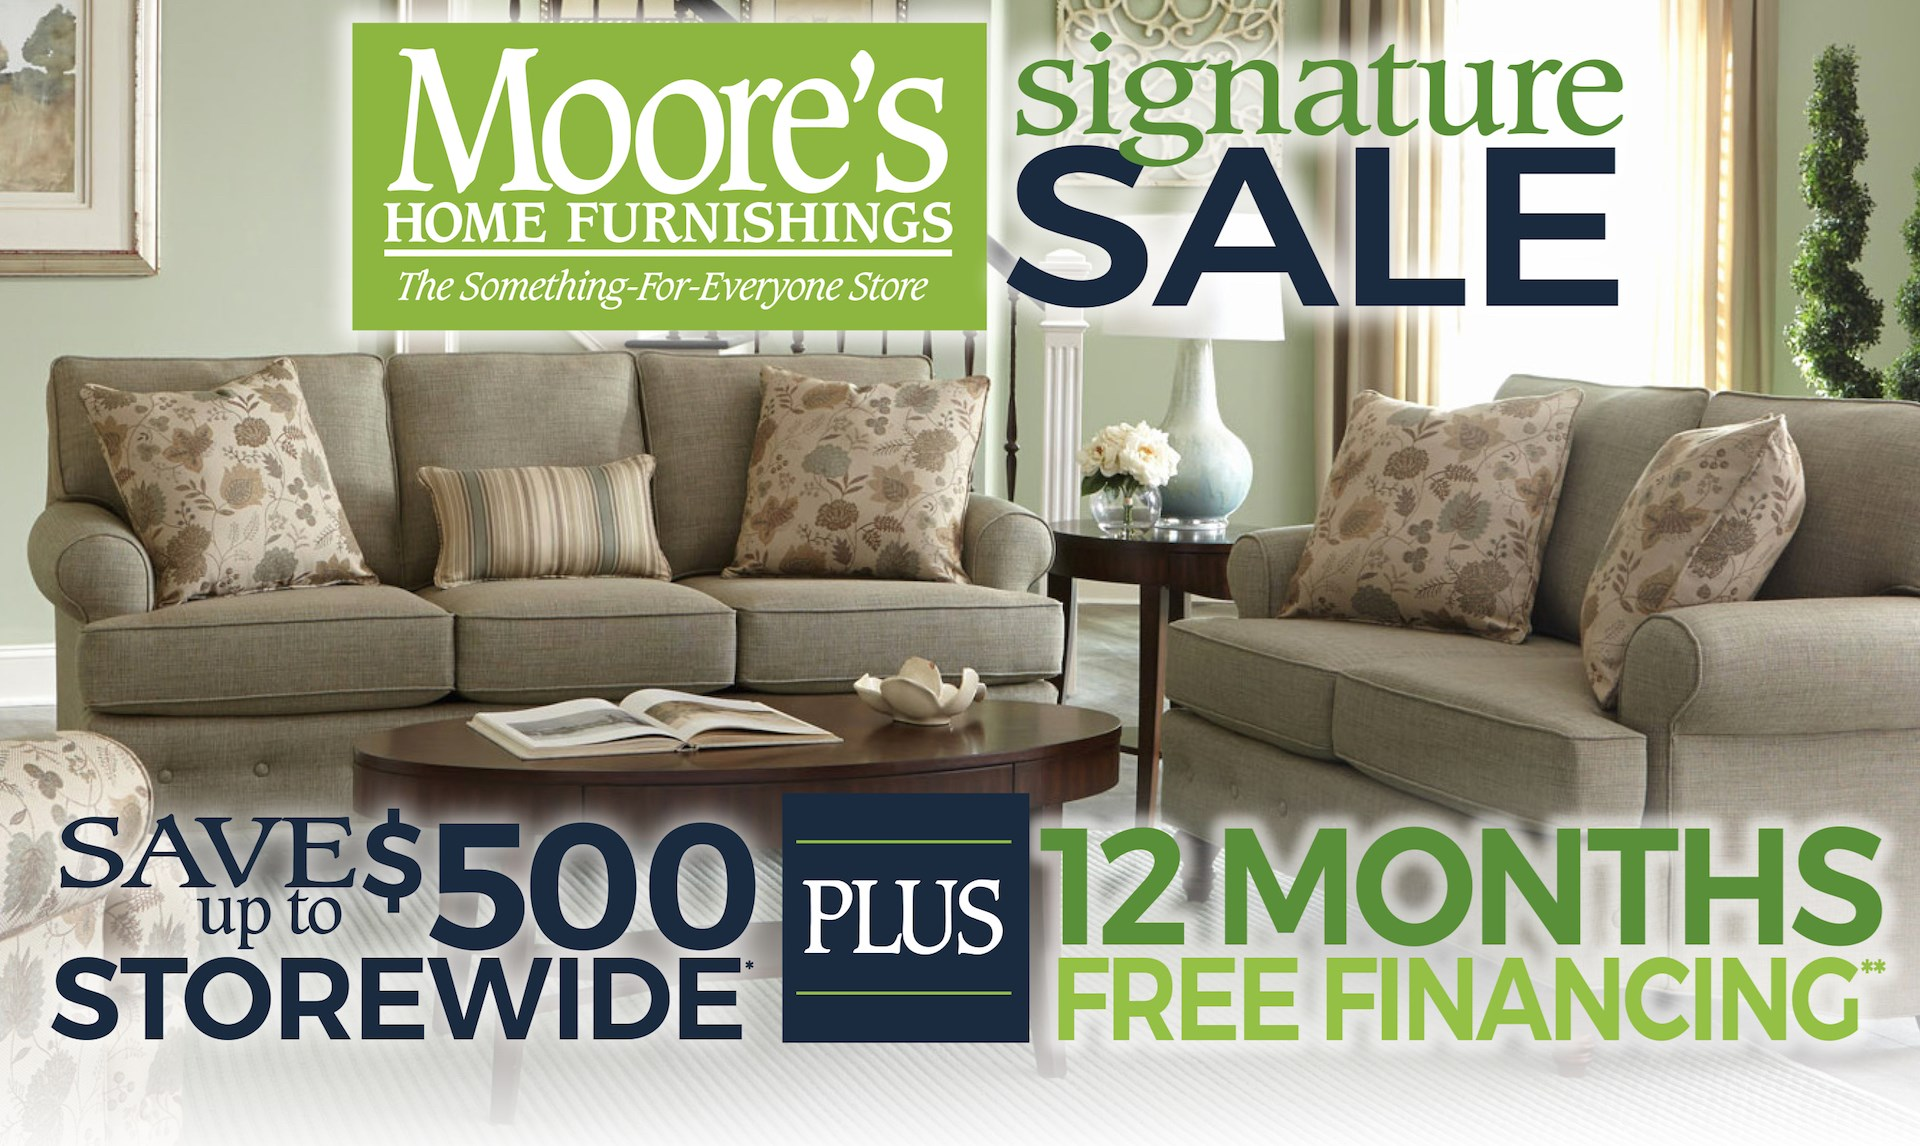 Signature Sale! Save Up to $500 Storewide plus 12 Months Free Financing